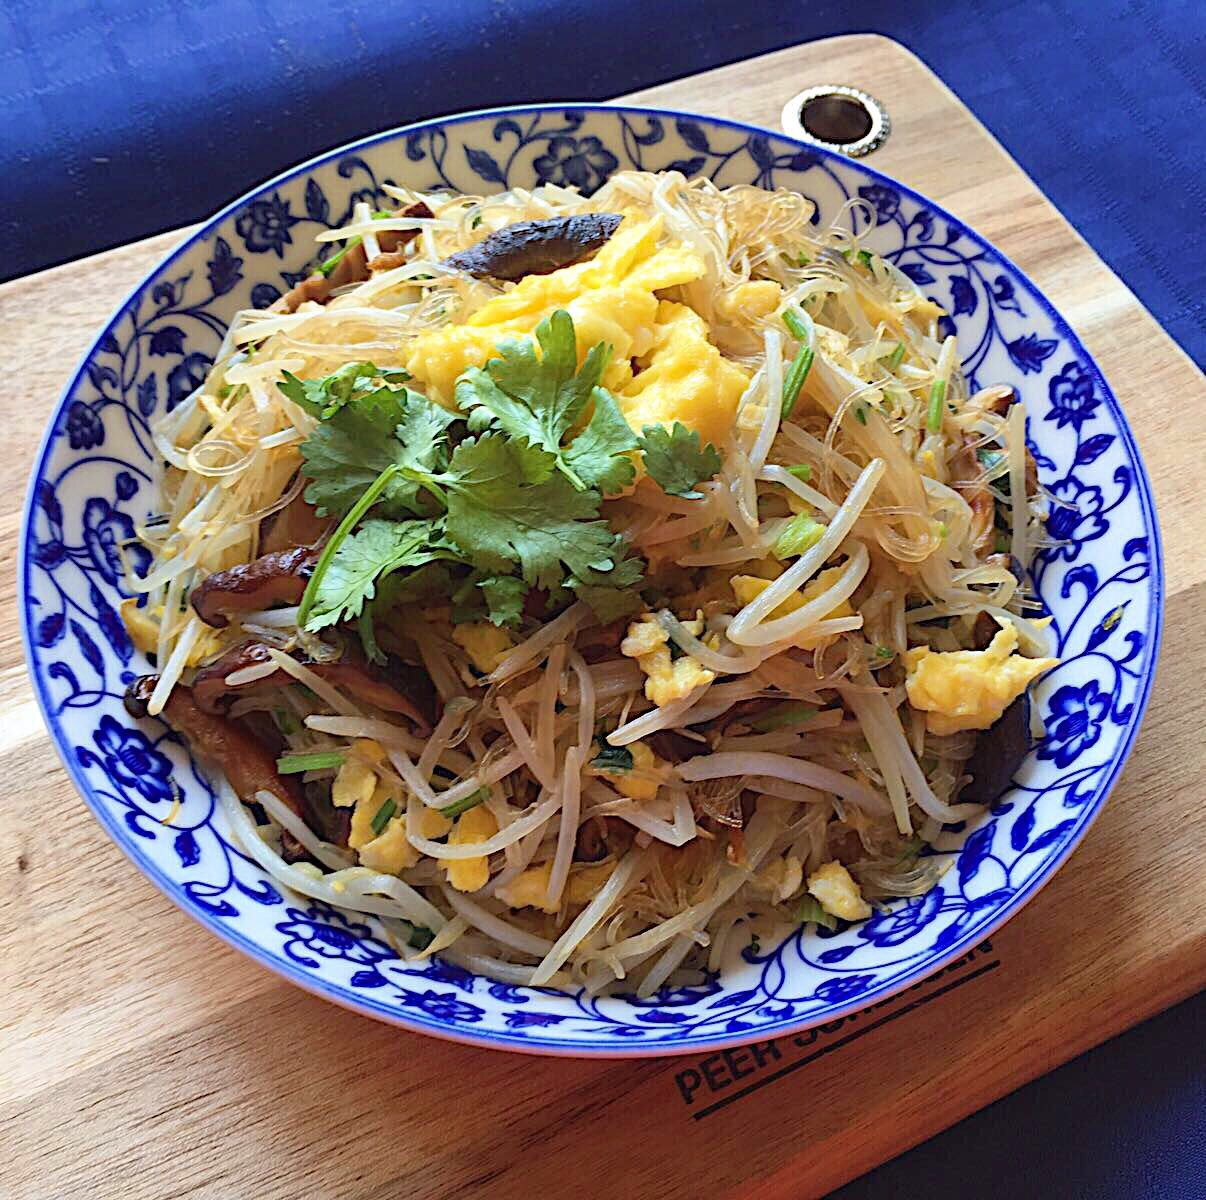 Beansprout, Glass Noodles, Mushroom